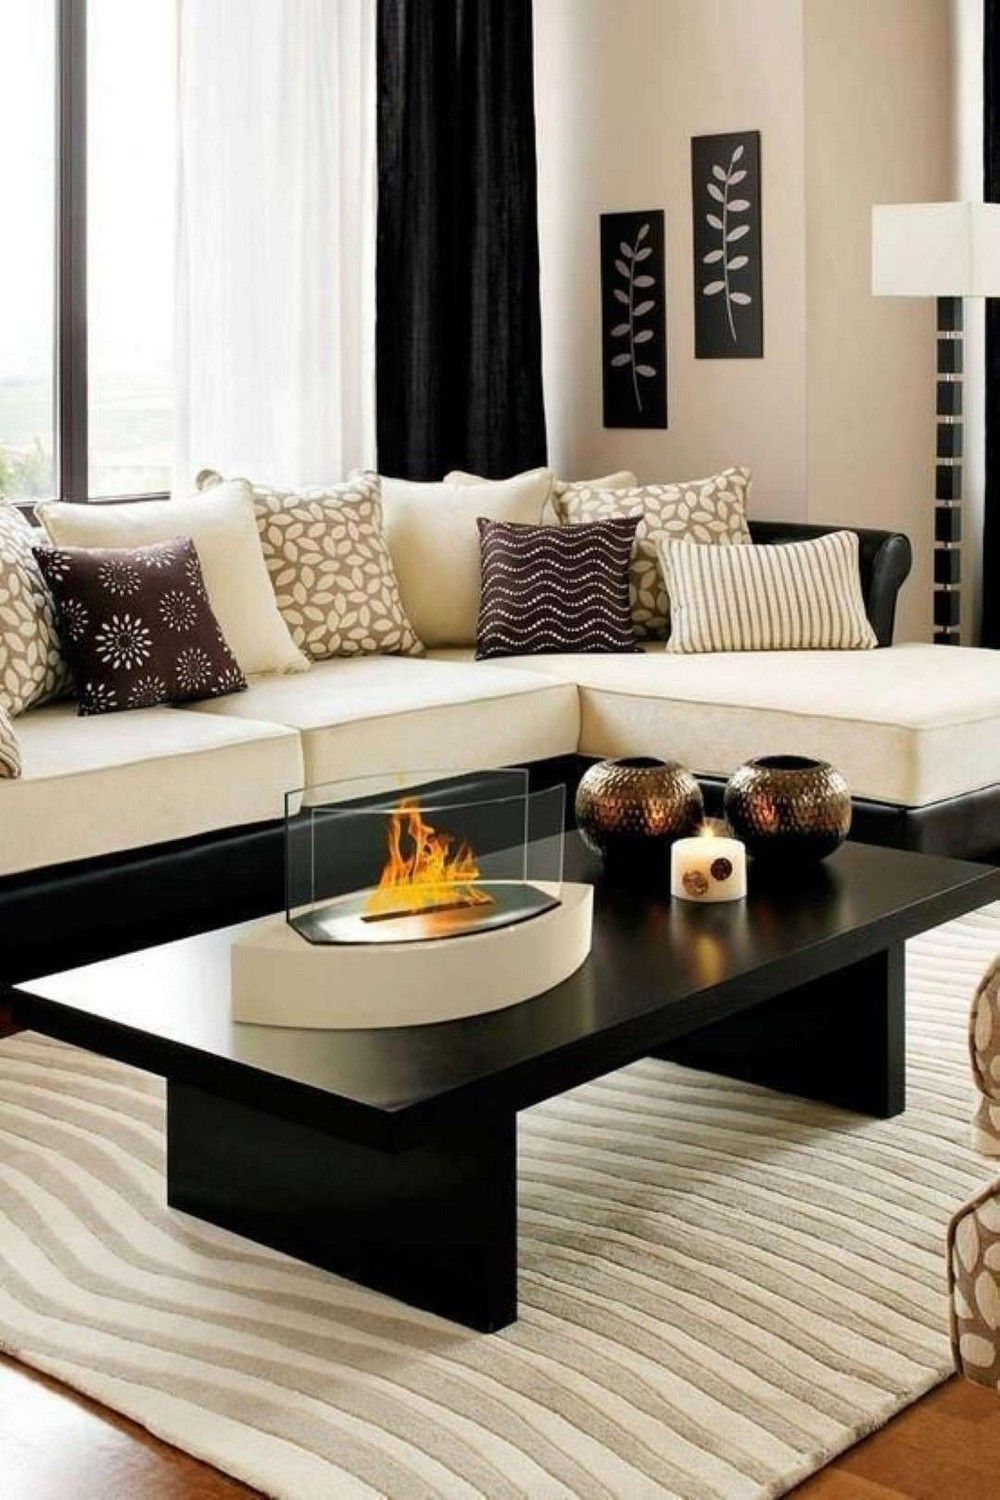 Centre Table Designs For Living Room: Modern Center Tables For A Comfortable And Luxurious